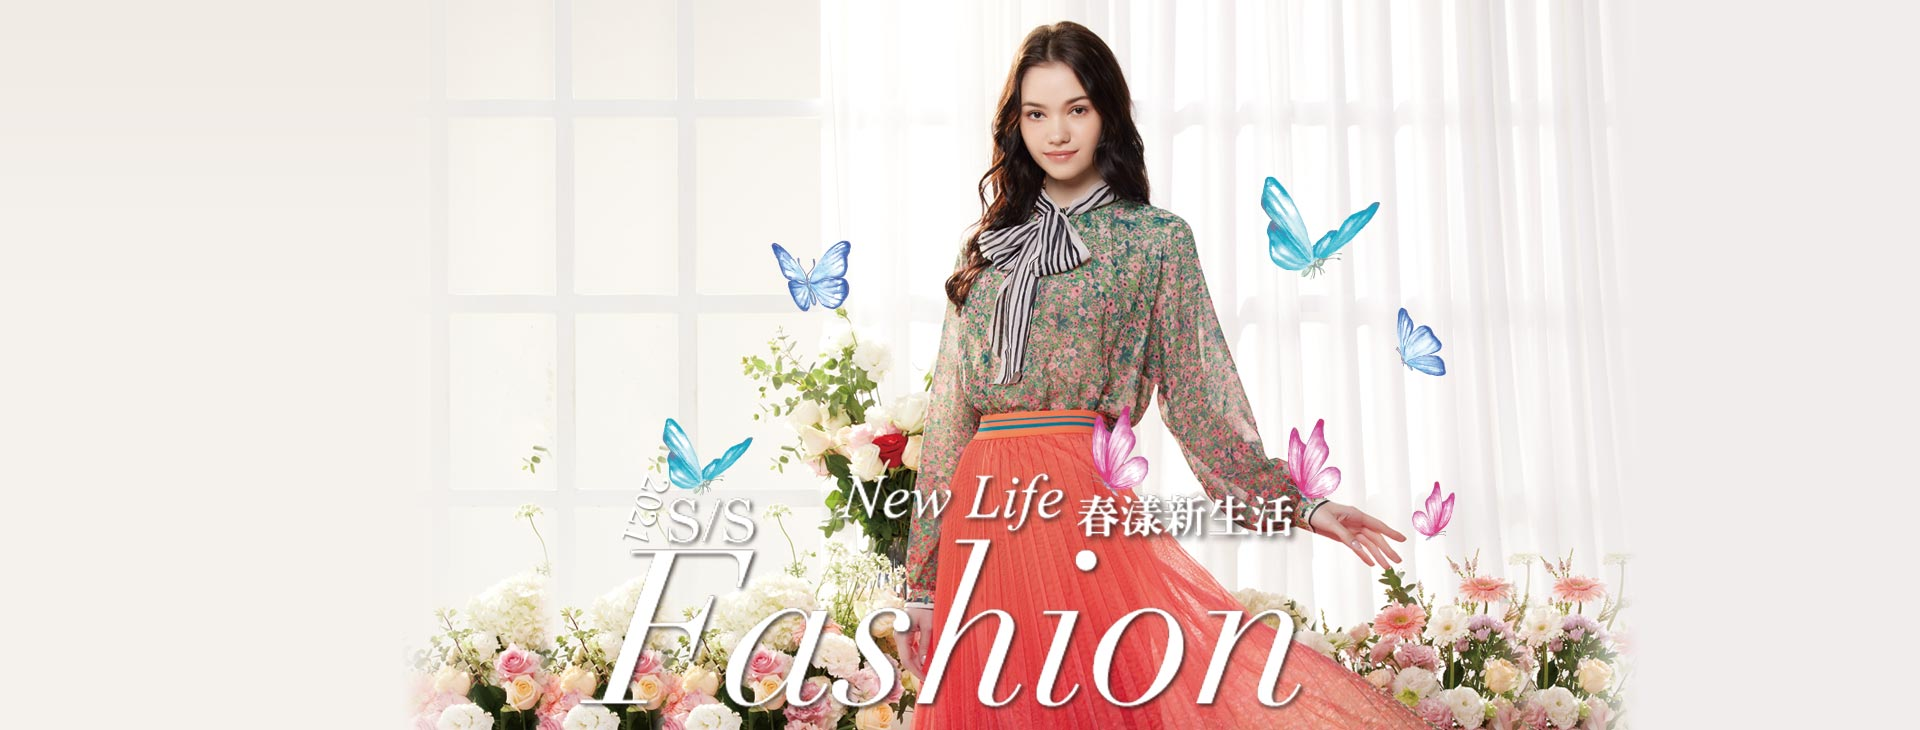 春女裝-New Life New Fashion春漾新生活